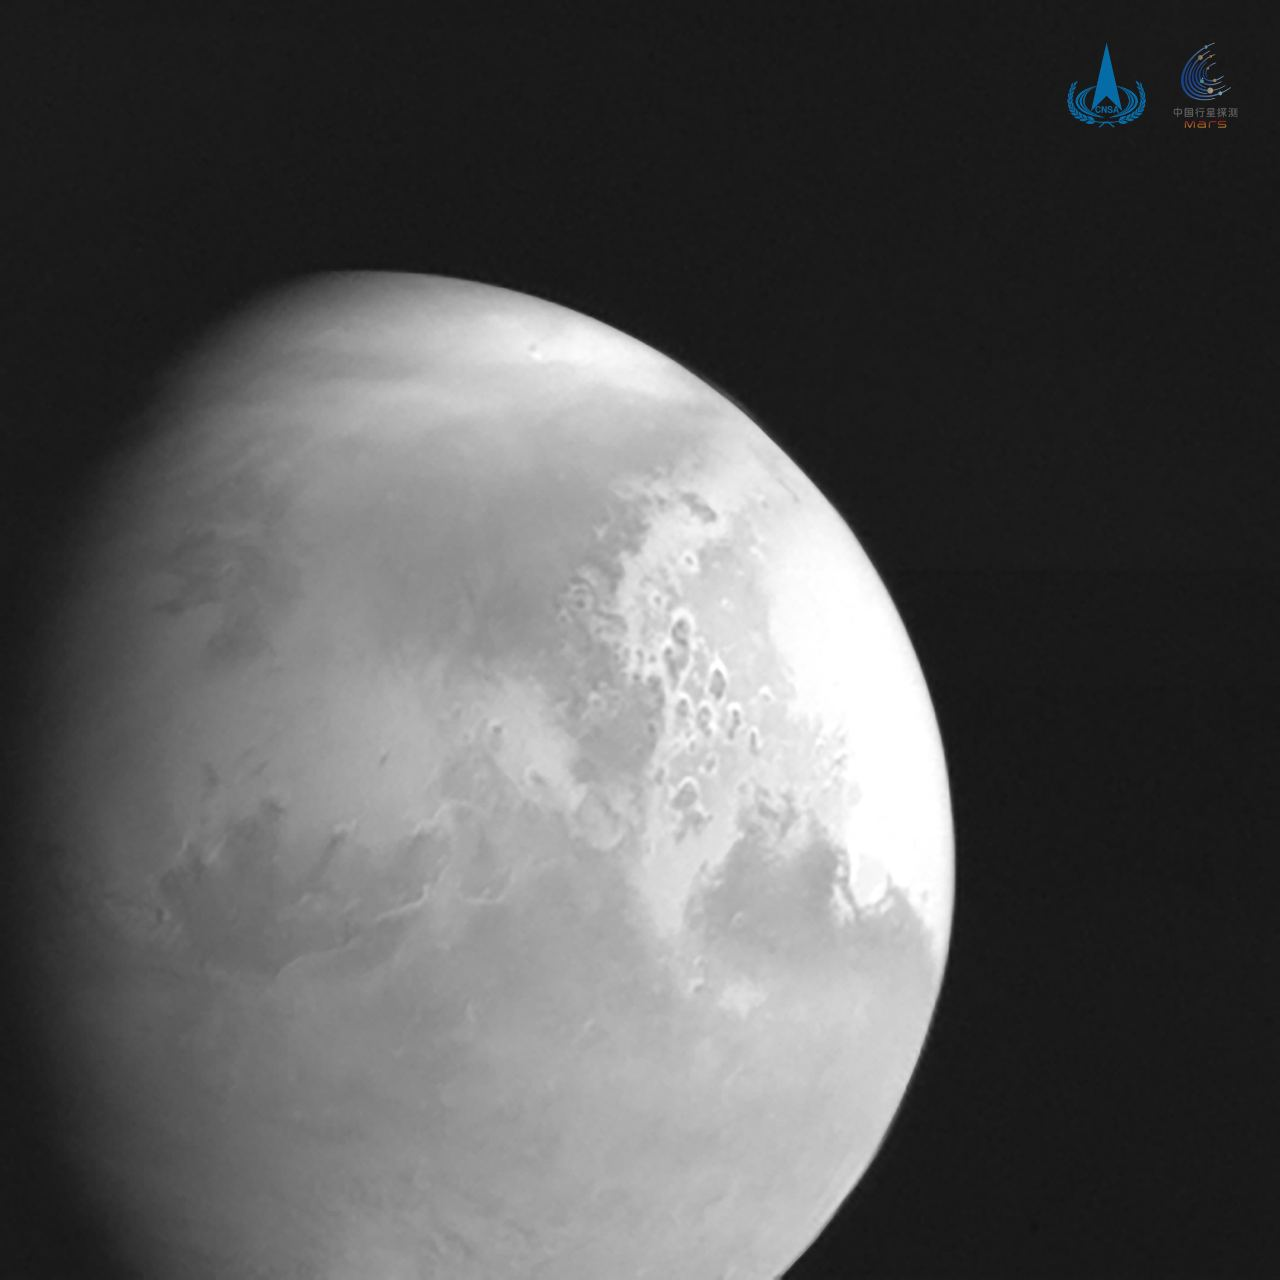 China's space probe has sent back its first image of Mars and is scheduled to touch down on the Red Planet later this year. Image Courtesy: China National Space Administration